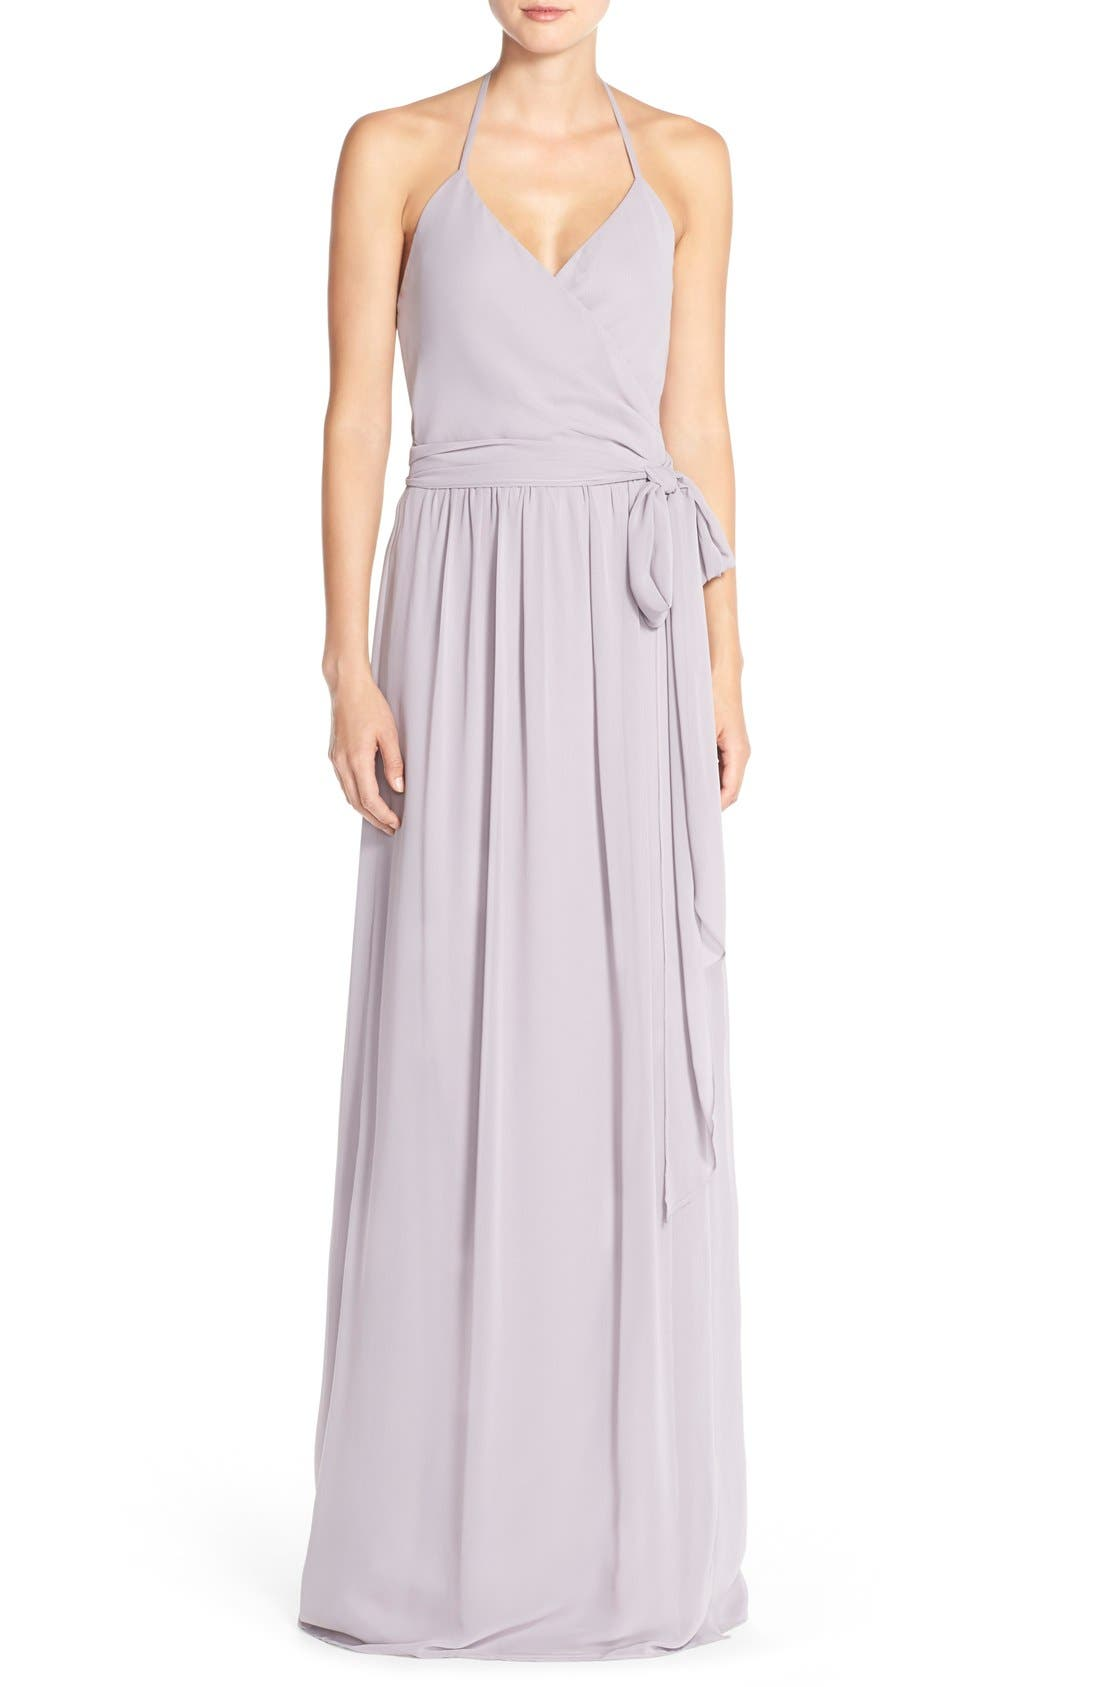 CEREMONY BY JOANNA AUGUST 'DC' Halter Wrap Chiffon